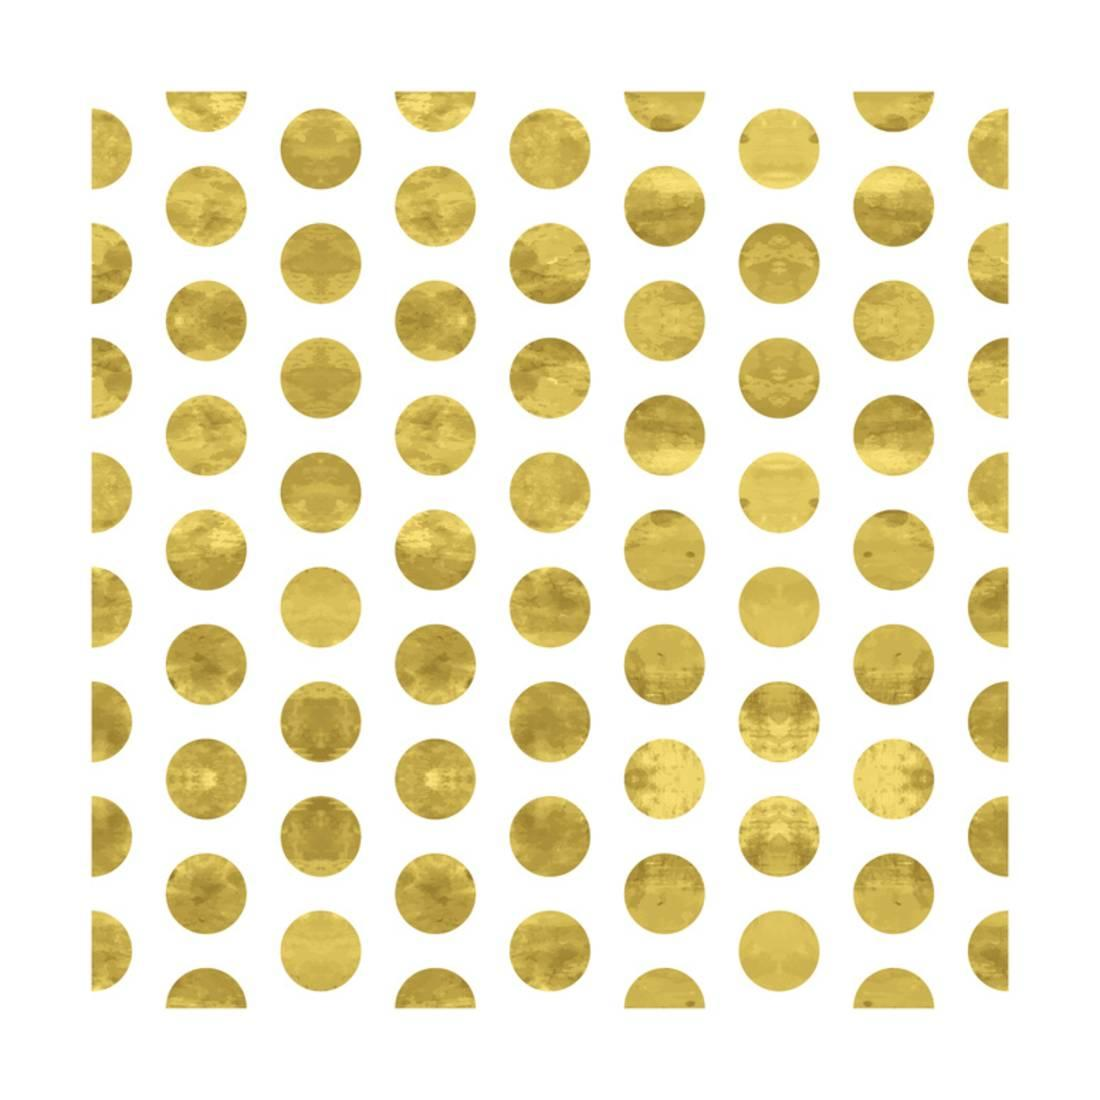 1100x1100 White And Gold Pattern. Abstract Geometric Modern Polka Dot